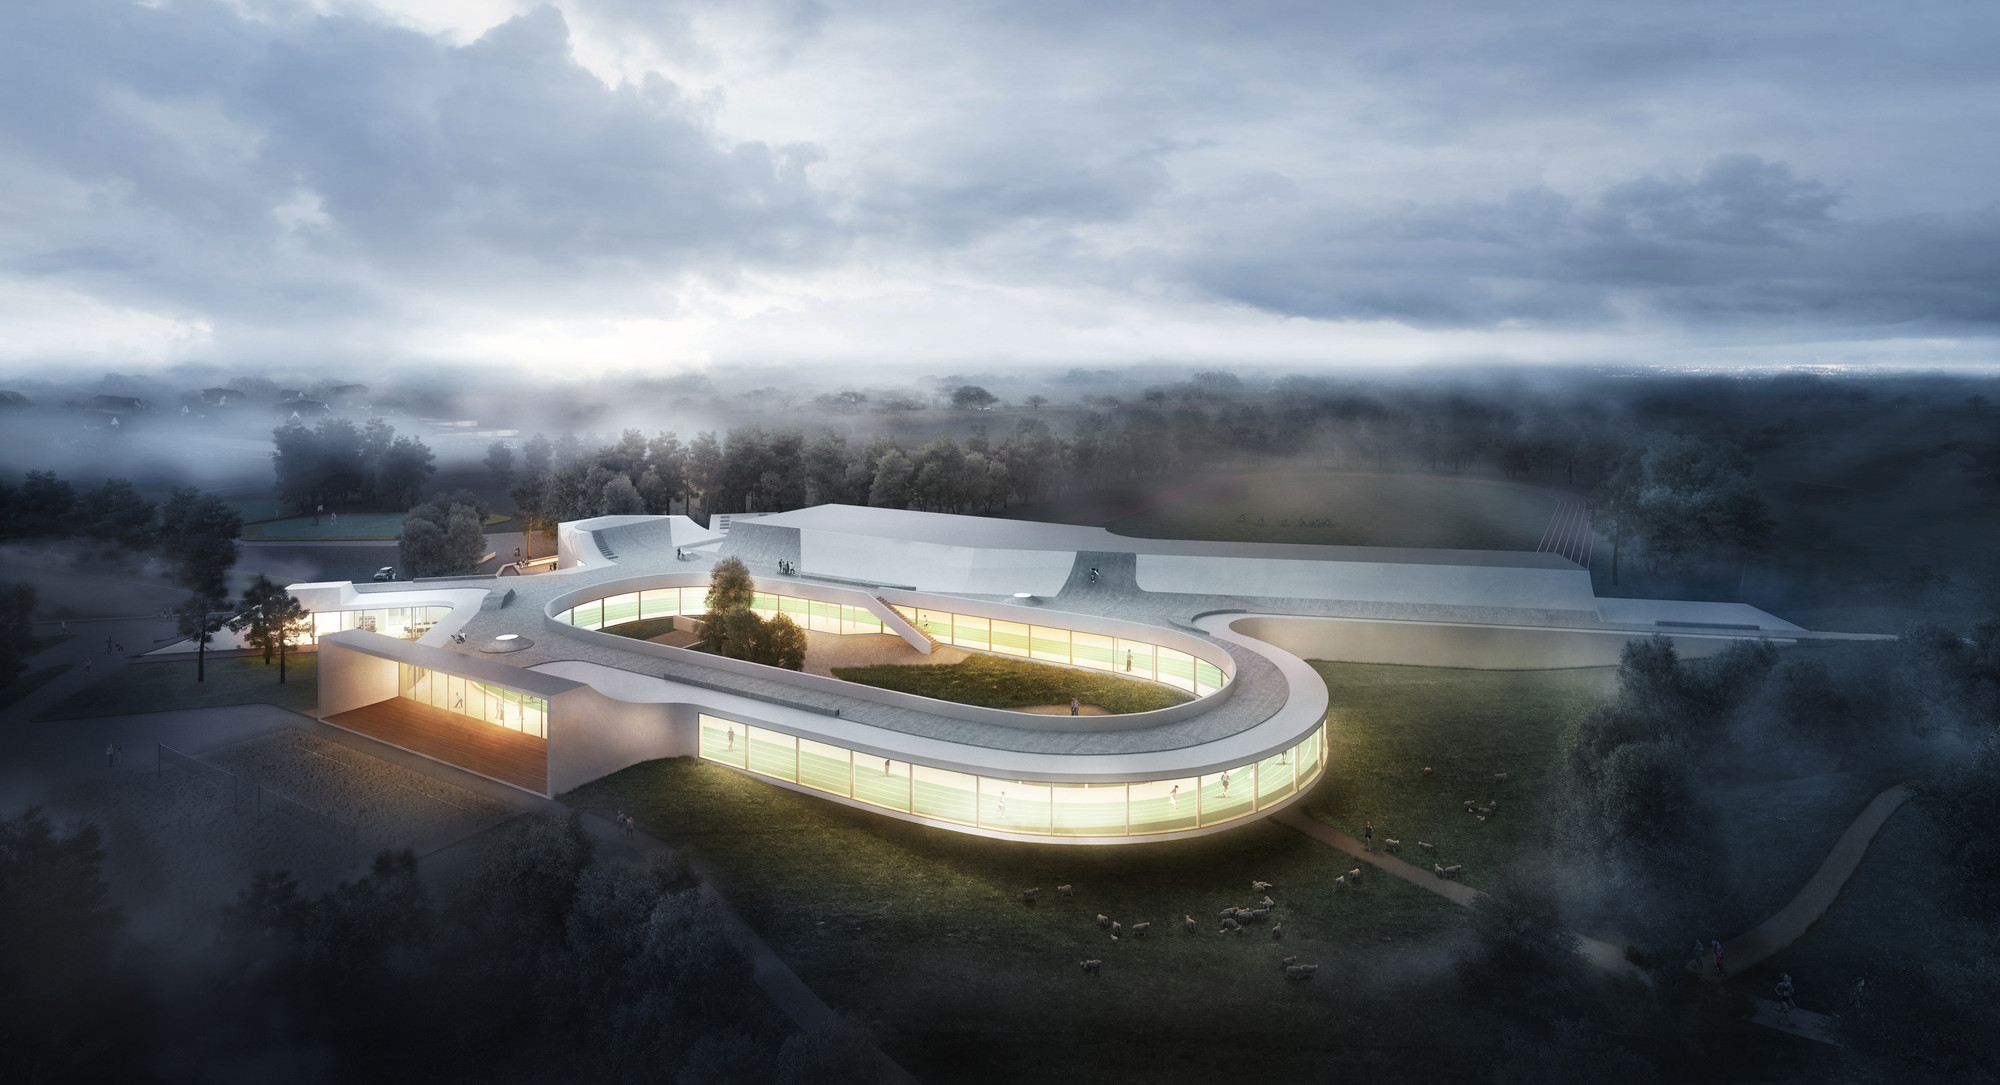 Elkiær+ Ebbeskov and Leth & Gori Win Competition for Multifunctional Sports Centre, © Bloom Images. Image Courtesy of Elkiær+ Ebbeskov / LETH & GORI